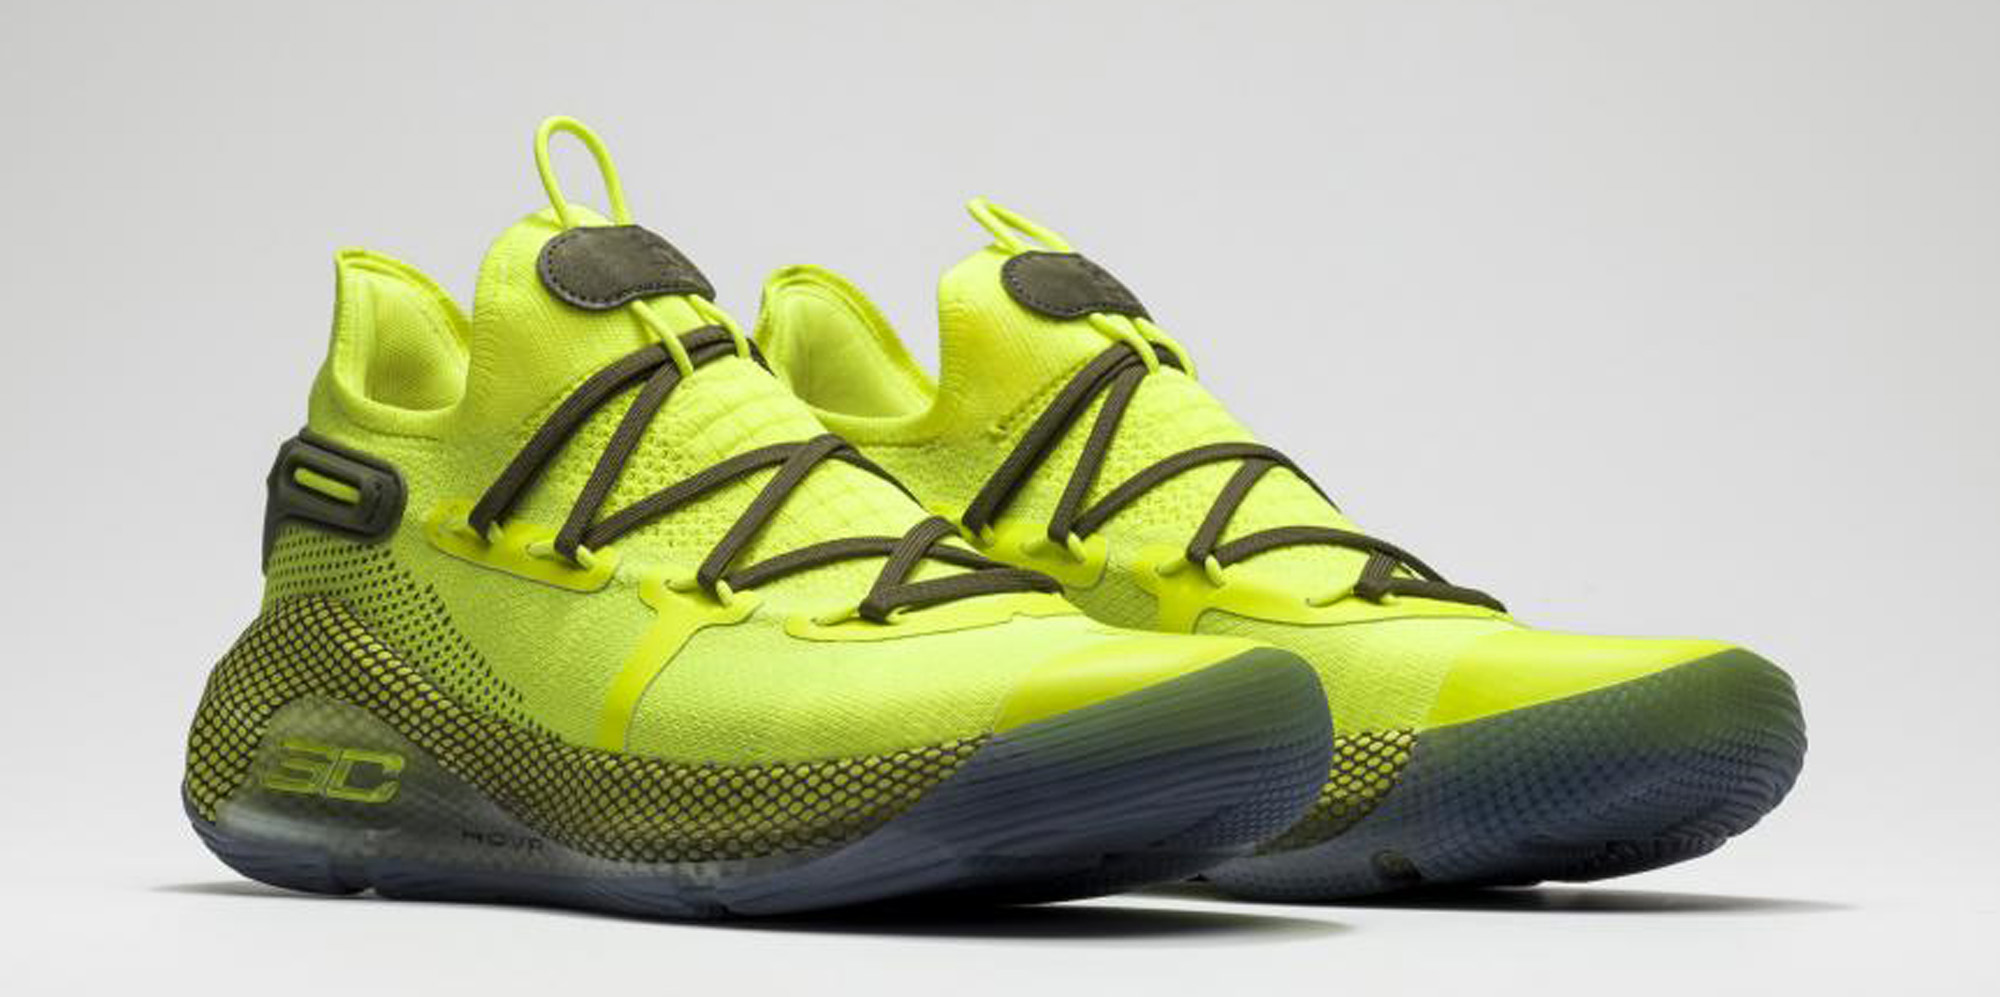 60c6bc63d4b8 Under-Armour-Curry-6-Coy-Fish-All-Star-7 - WearTesters